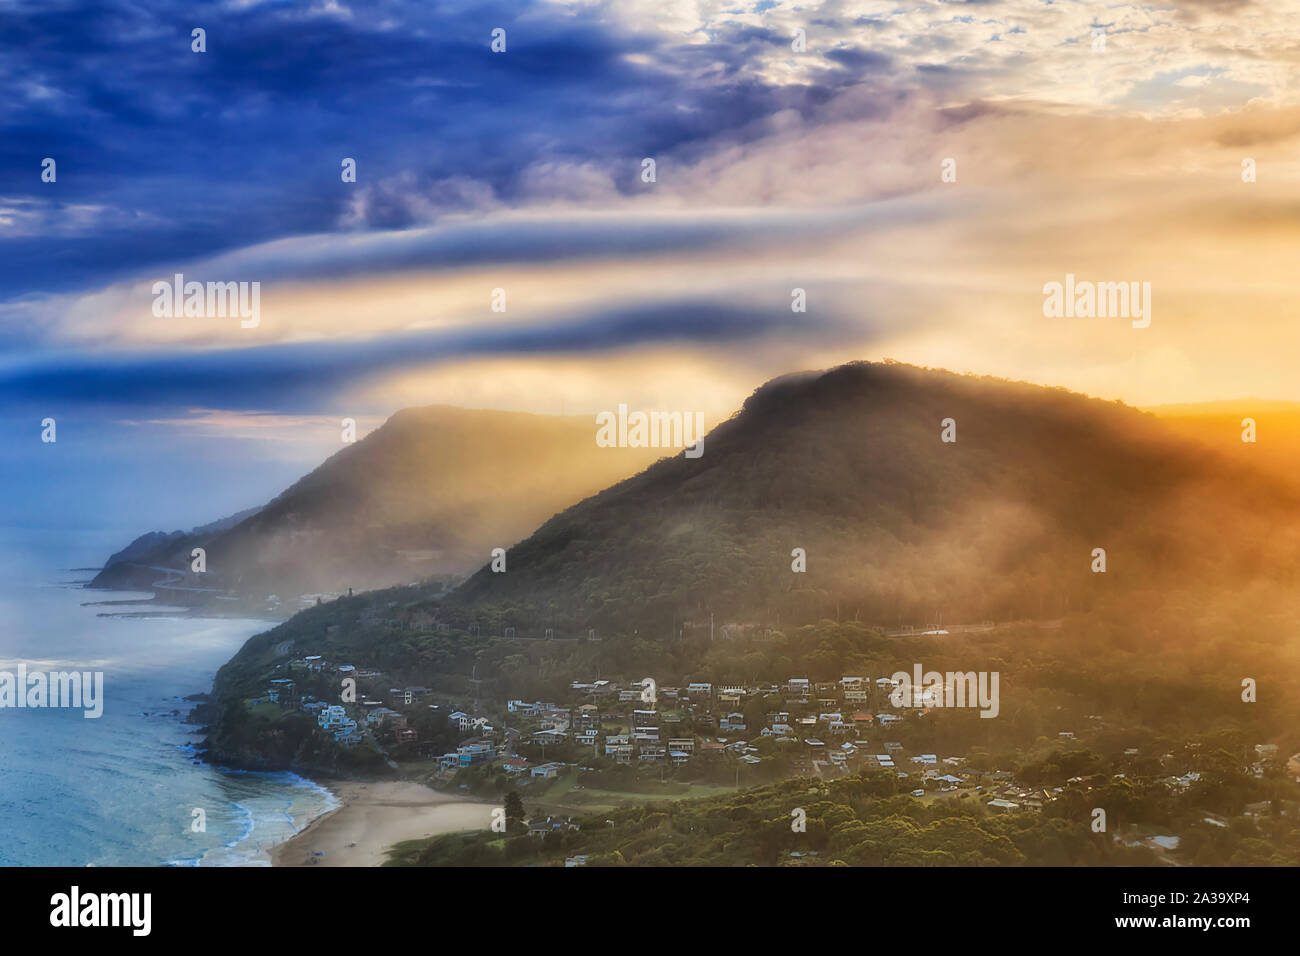 Range of gum-tree covered hills on South Coast off Sydney part of Grand Pacific Driver scenic route with famous Sea Cliff Bridge at sunset from elevat Stock Photo